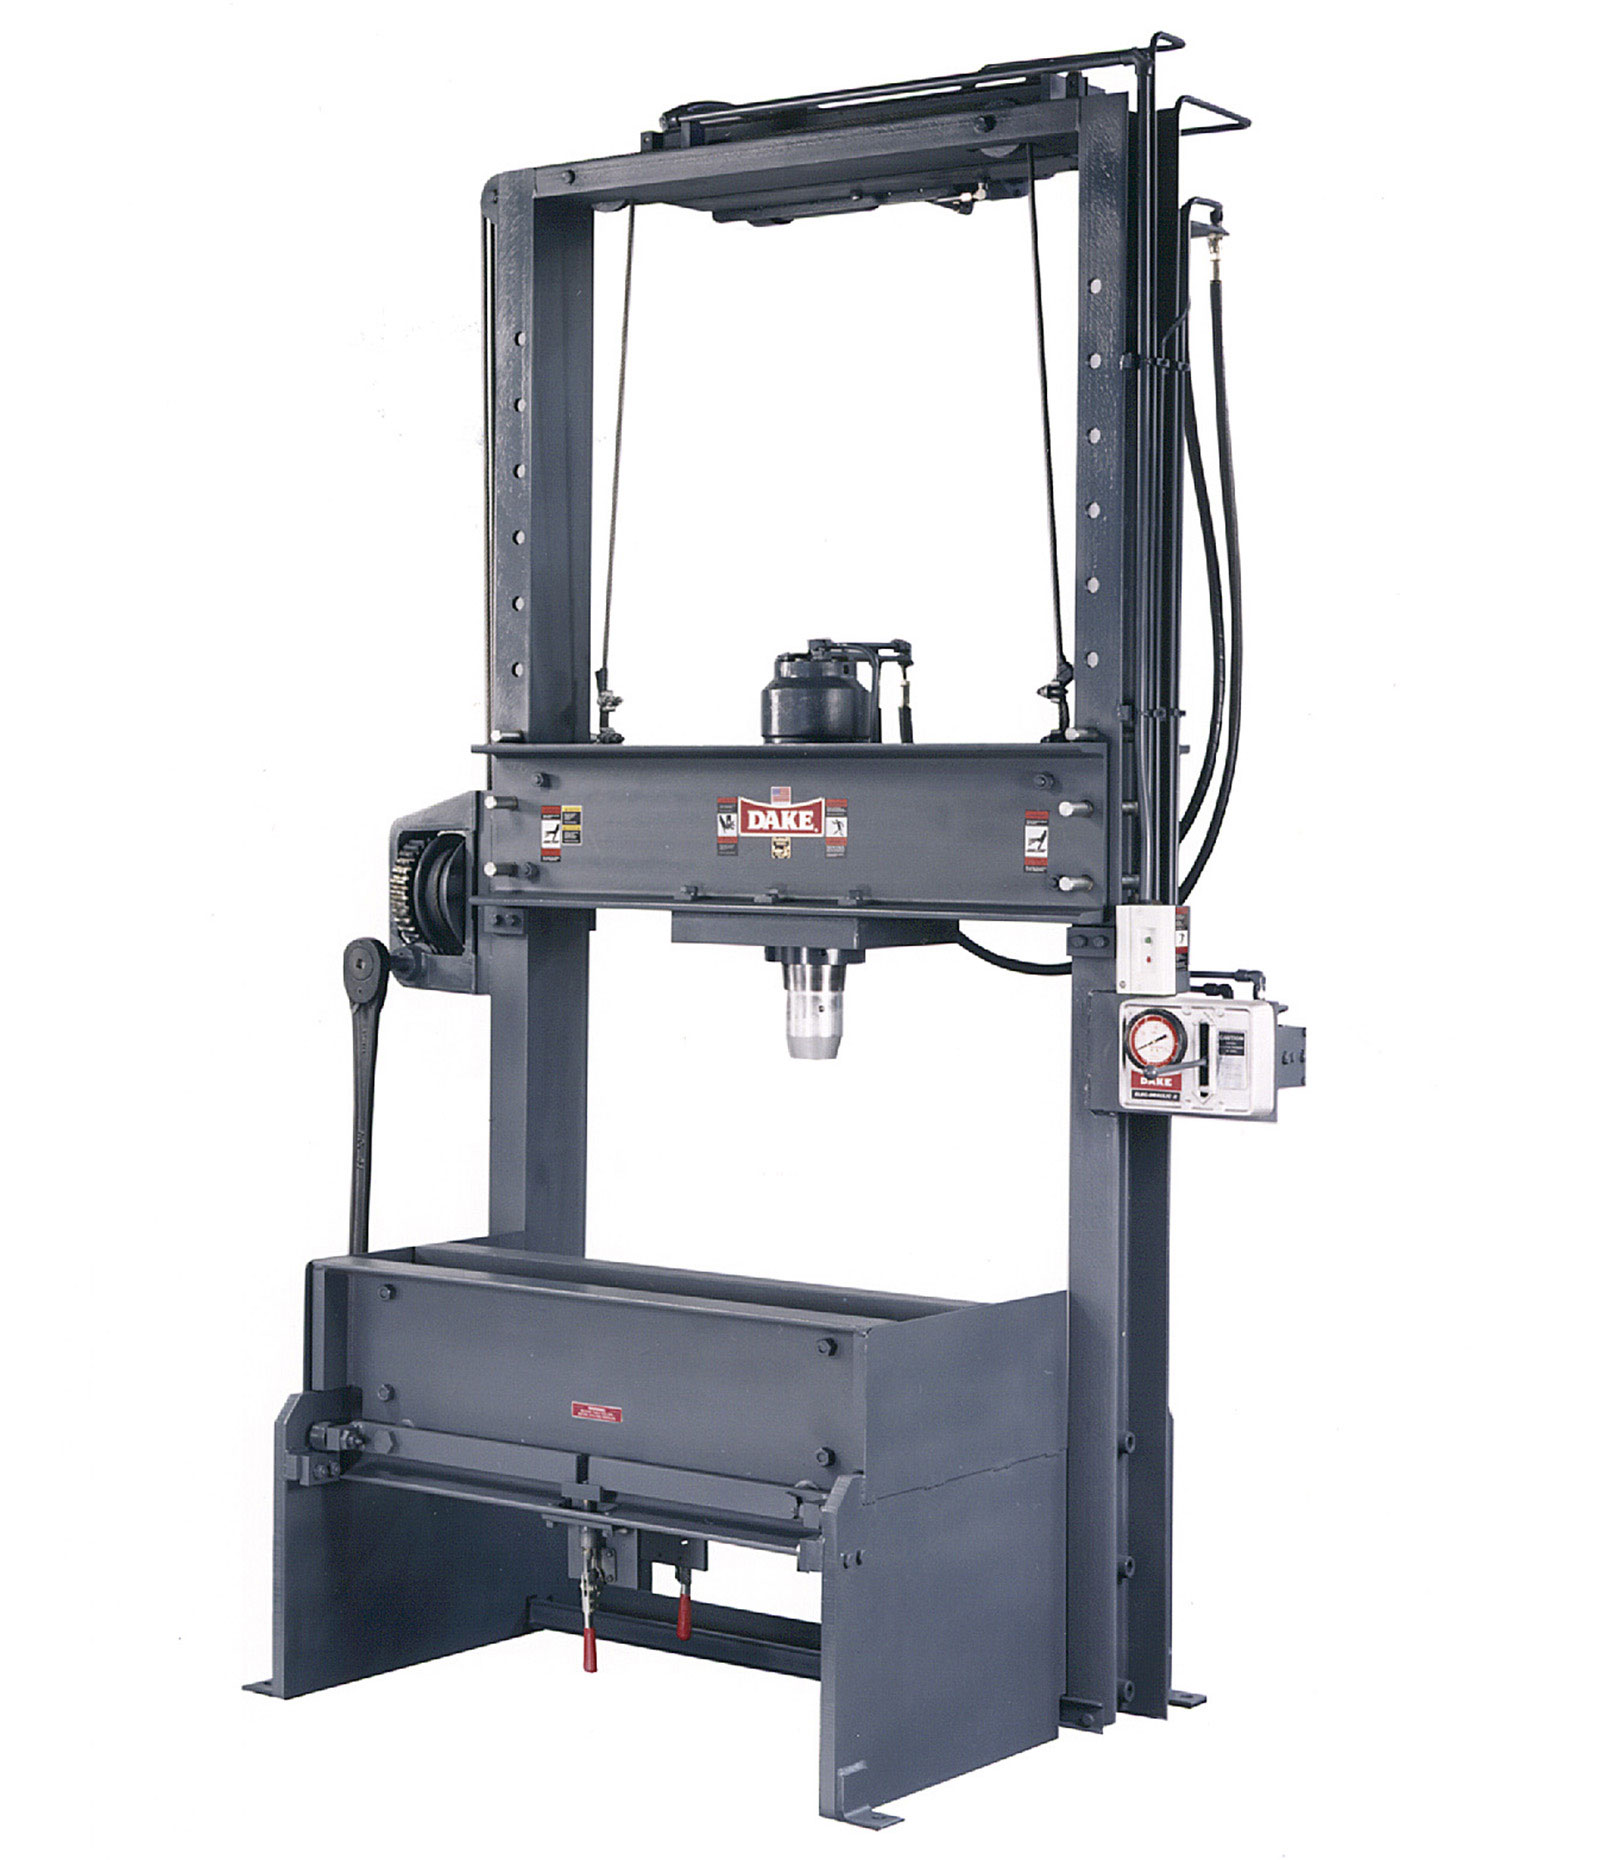 Hydraulic Presses H Frame Shop Dake Corp Press Wiring Diagram Movable Table